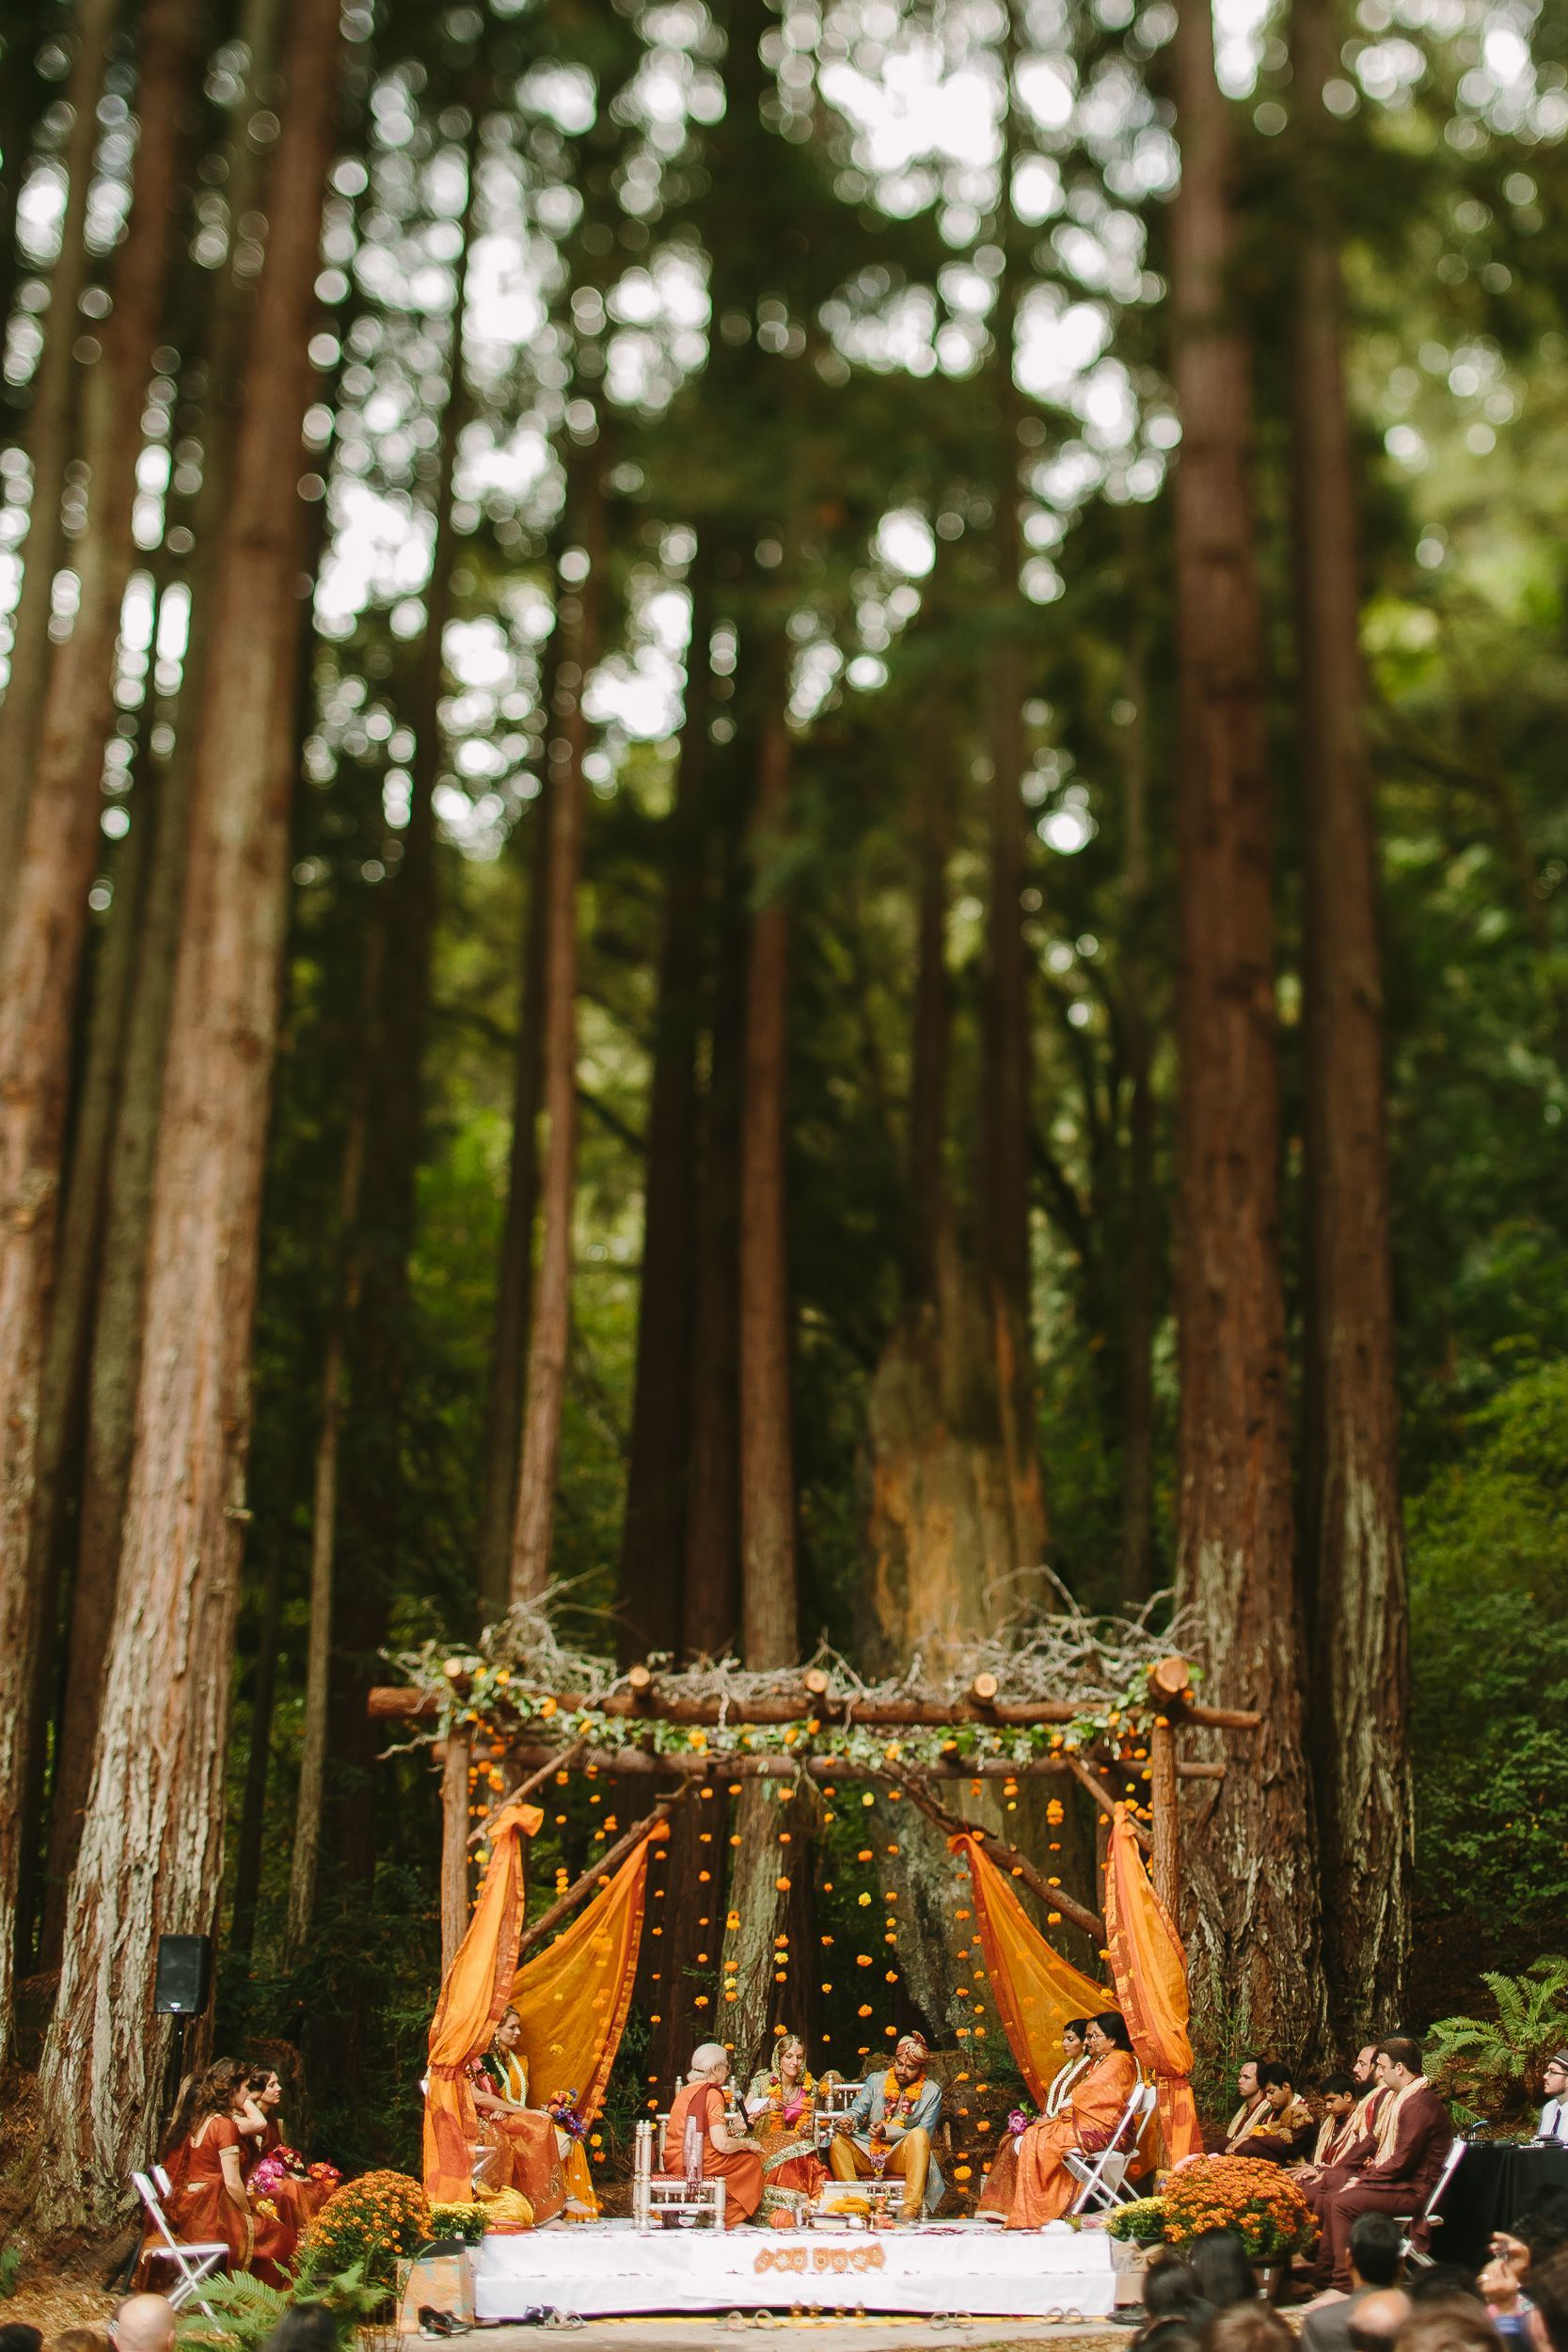 Rustic Indian Wedding - Rustic Wedding Chic -   18 wedding Indian ideas